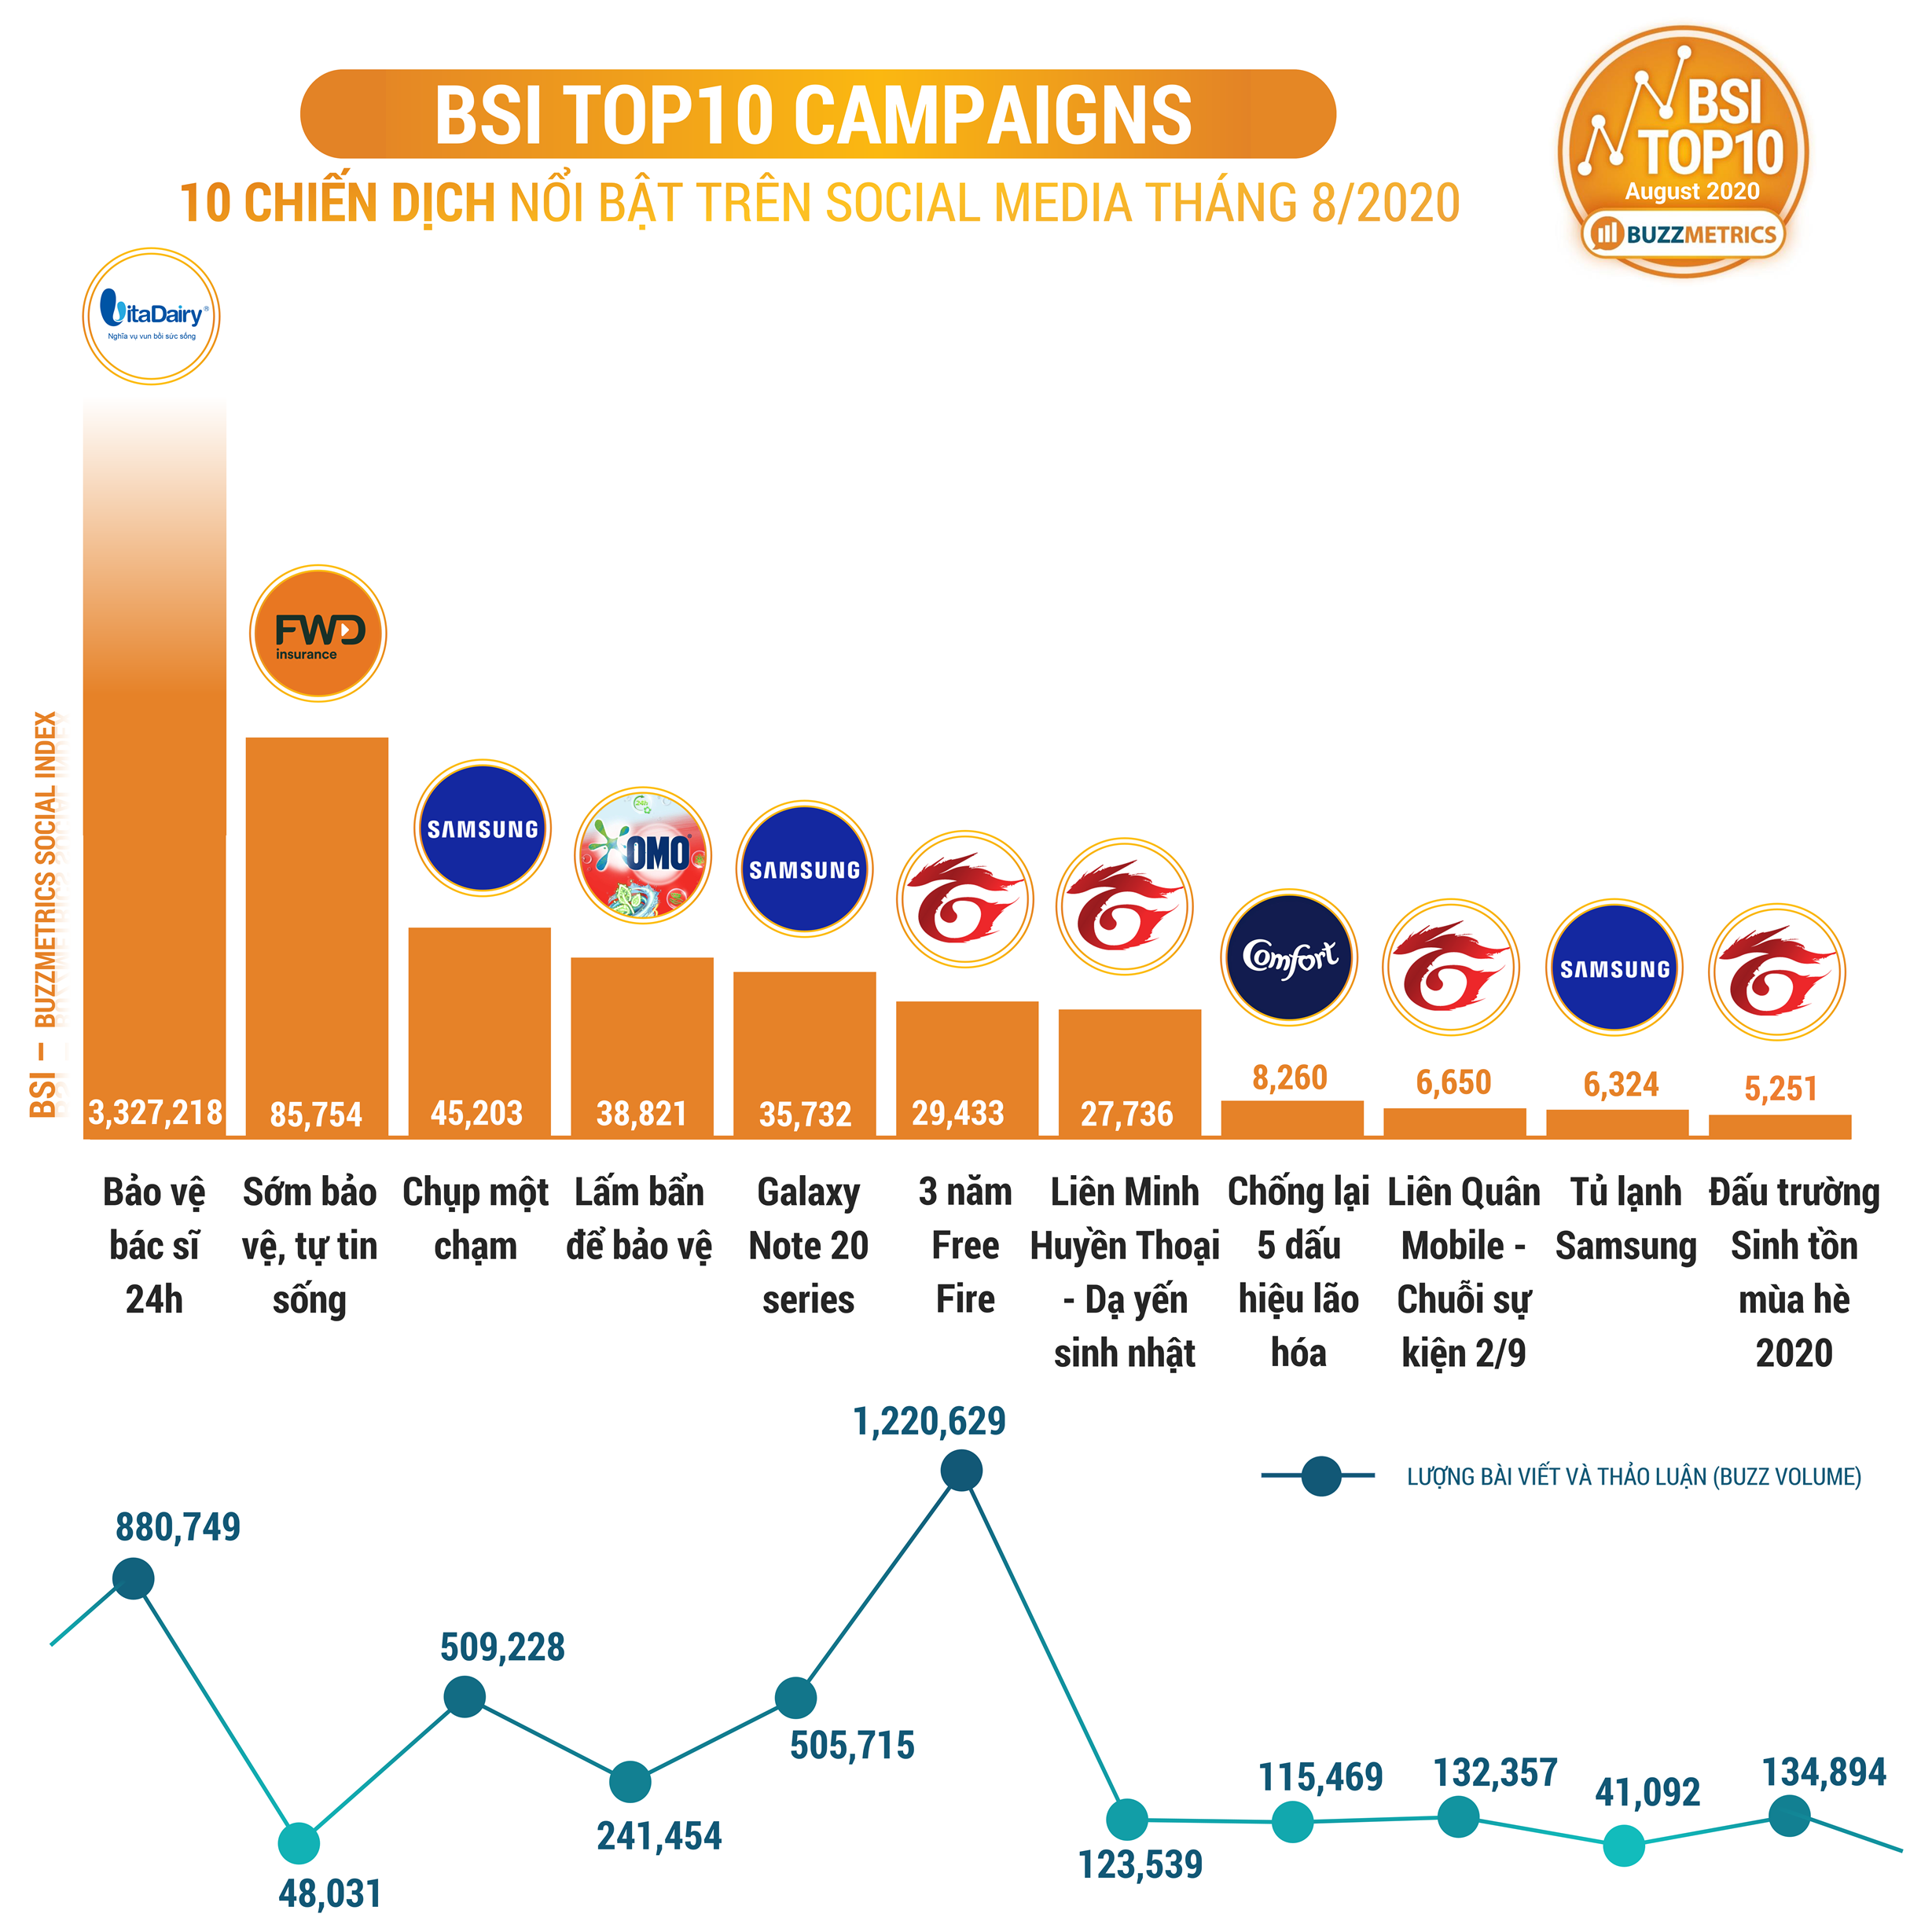 BSI Top10 AUG 2020 CAMPAIGNS chart1